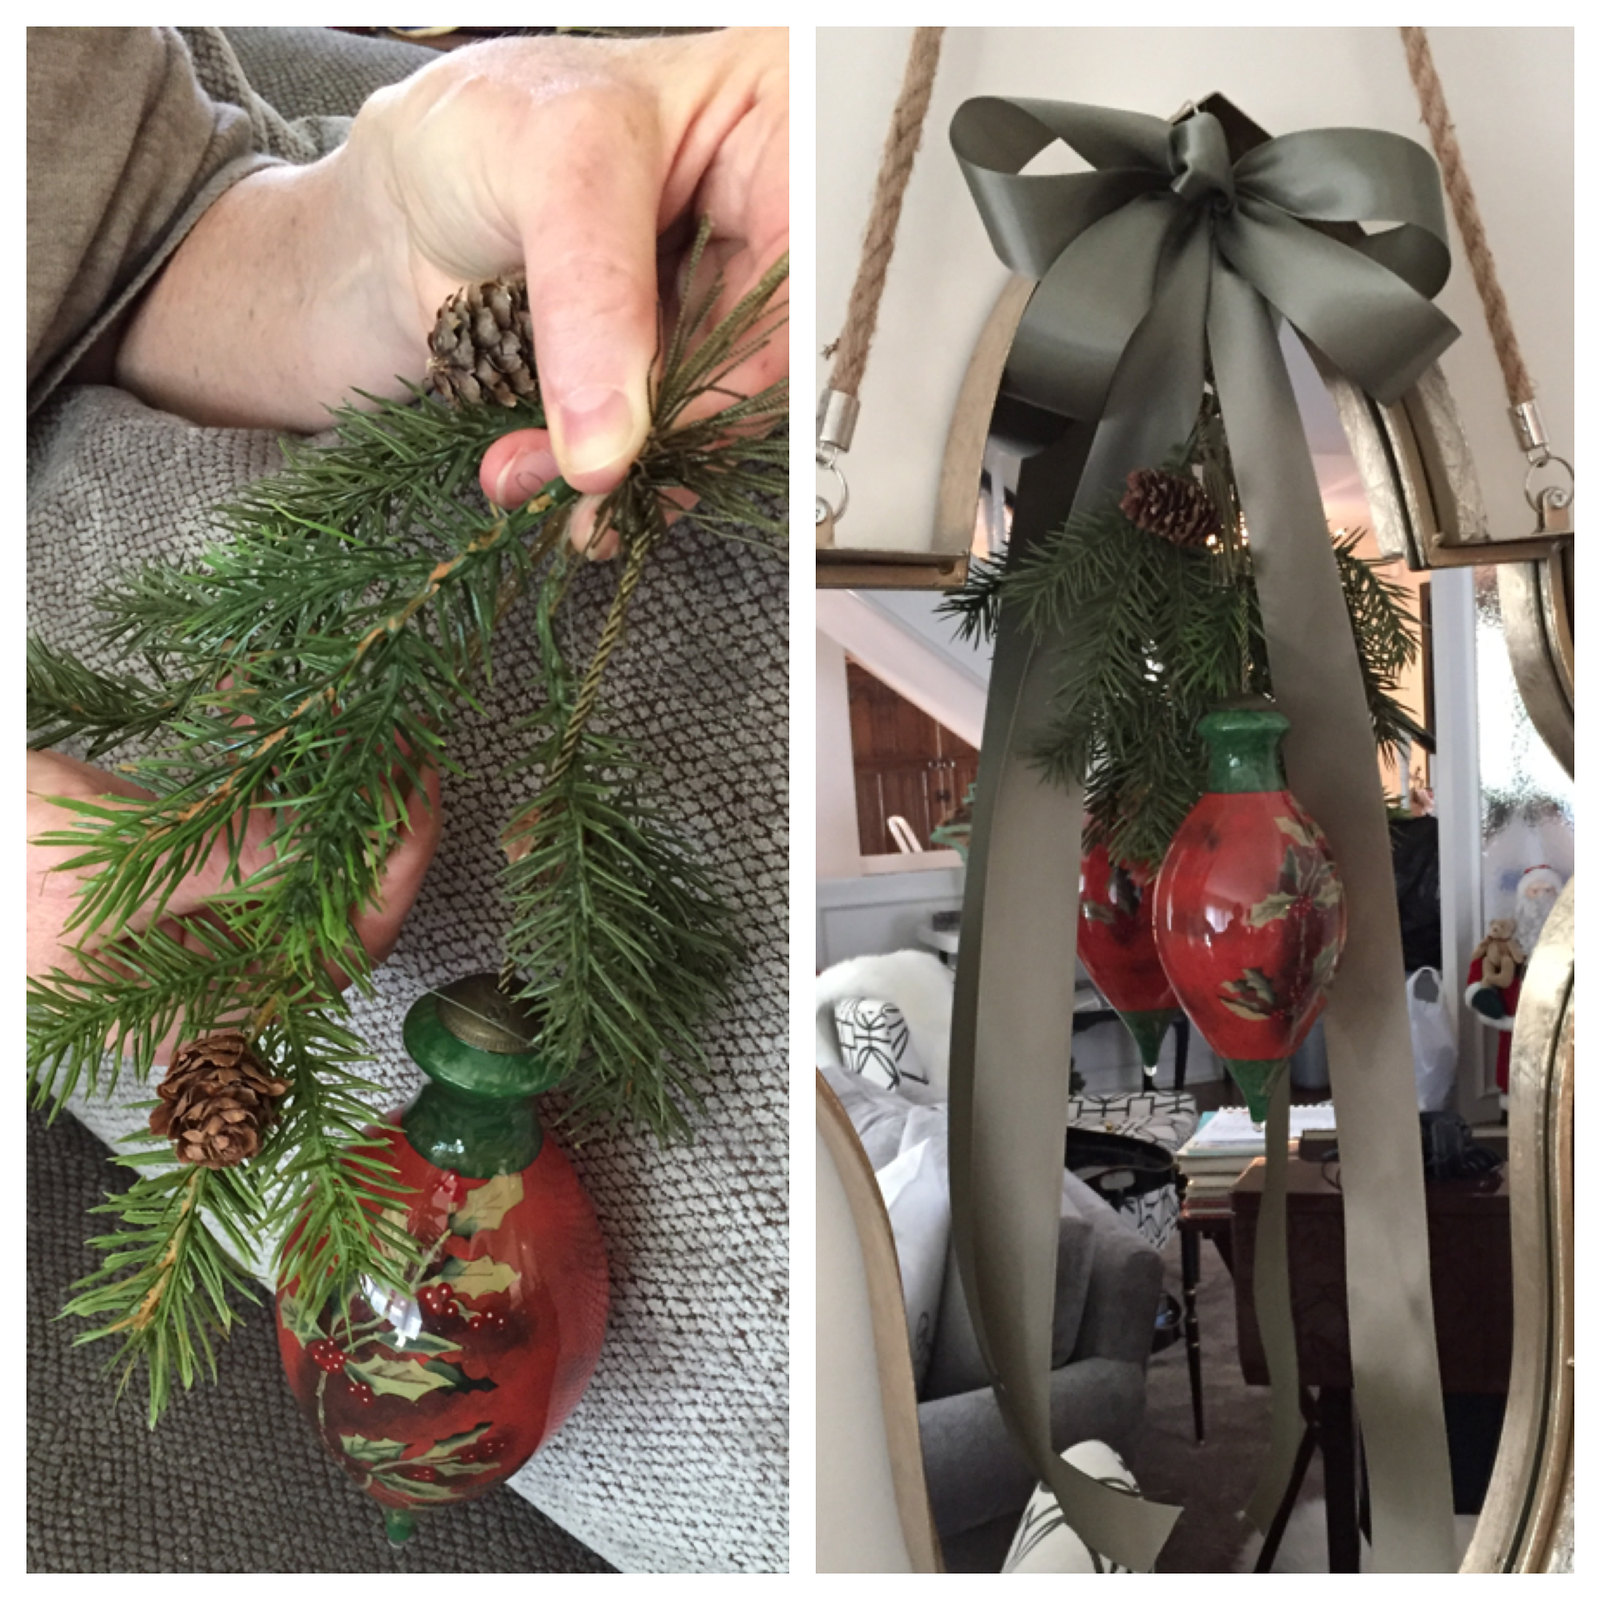 tying together greens, ribbon and bauble for a handmade Christmas decor item